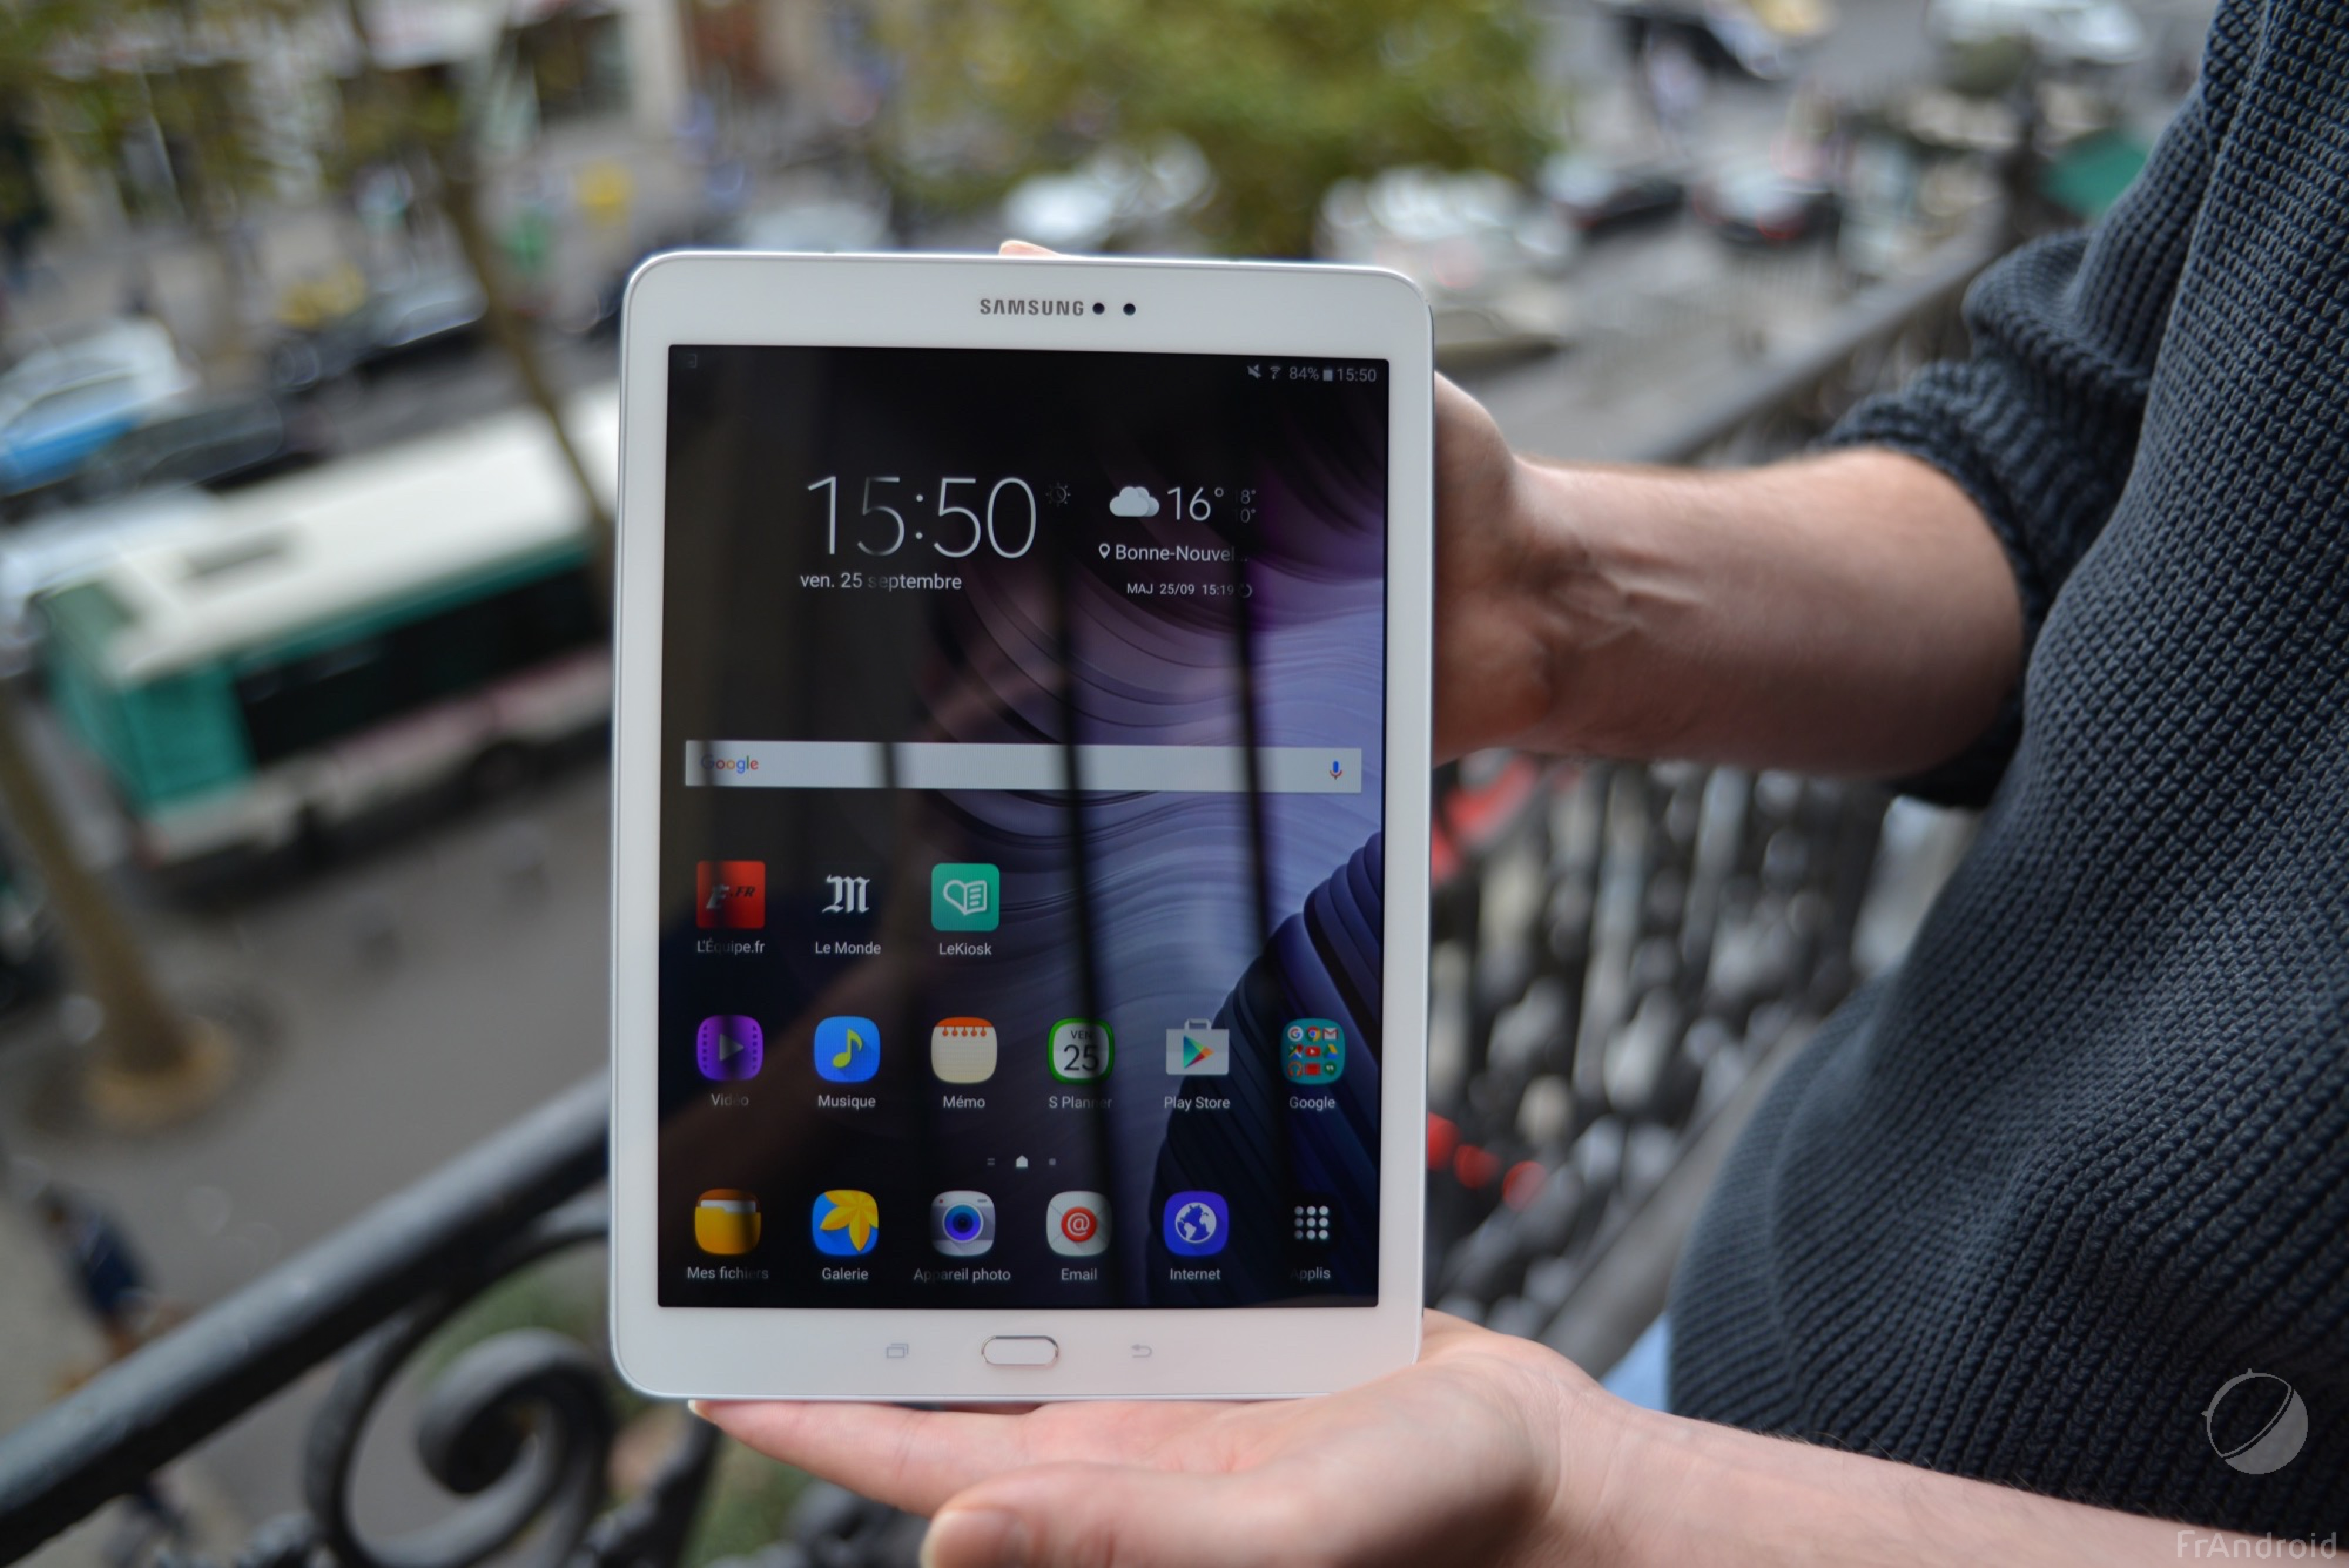 ad05b5841effec Test Samsung Galaxy Tab S2 9.7   notre avis complet - Tablettes ...